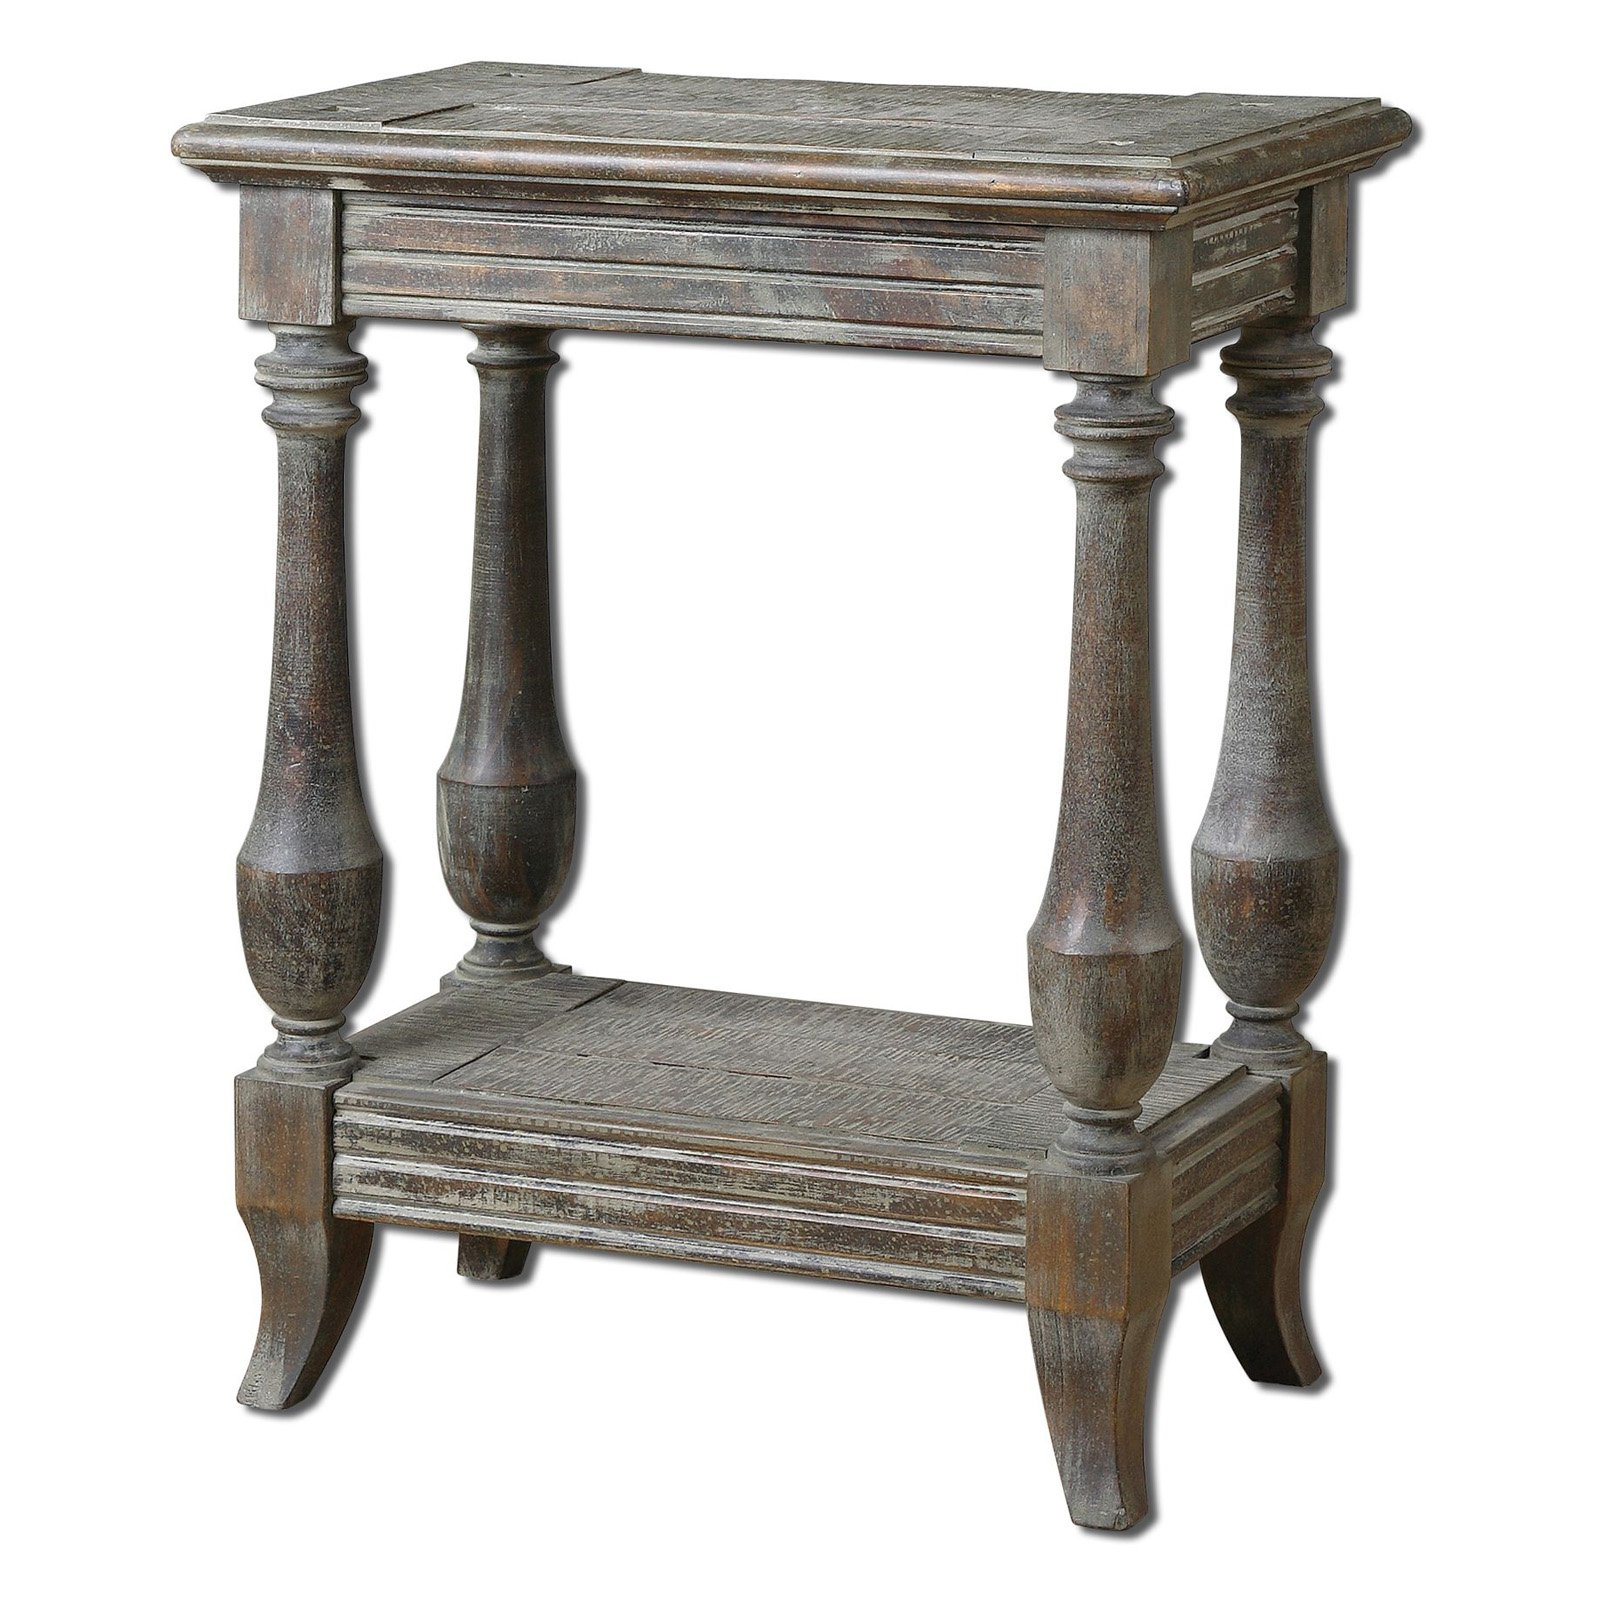 creative side accent table with tall end tables brilliant distressed designs wood large marble coffee threshold margate strip between carpet and tile outdoor dining set umbrella